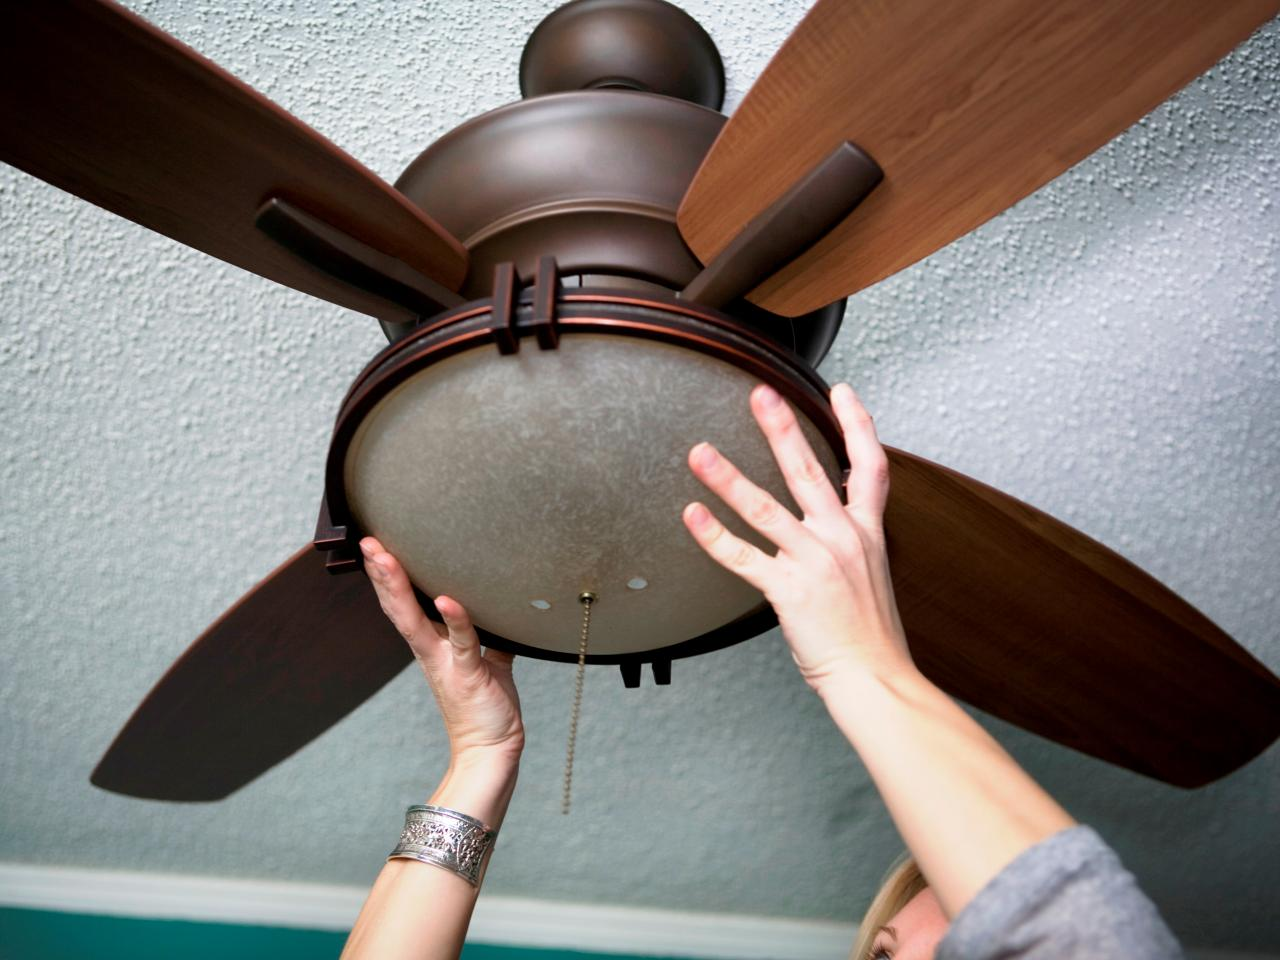 Finding The Best Location For Mounting A Ceiling Fan